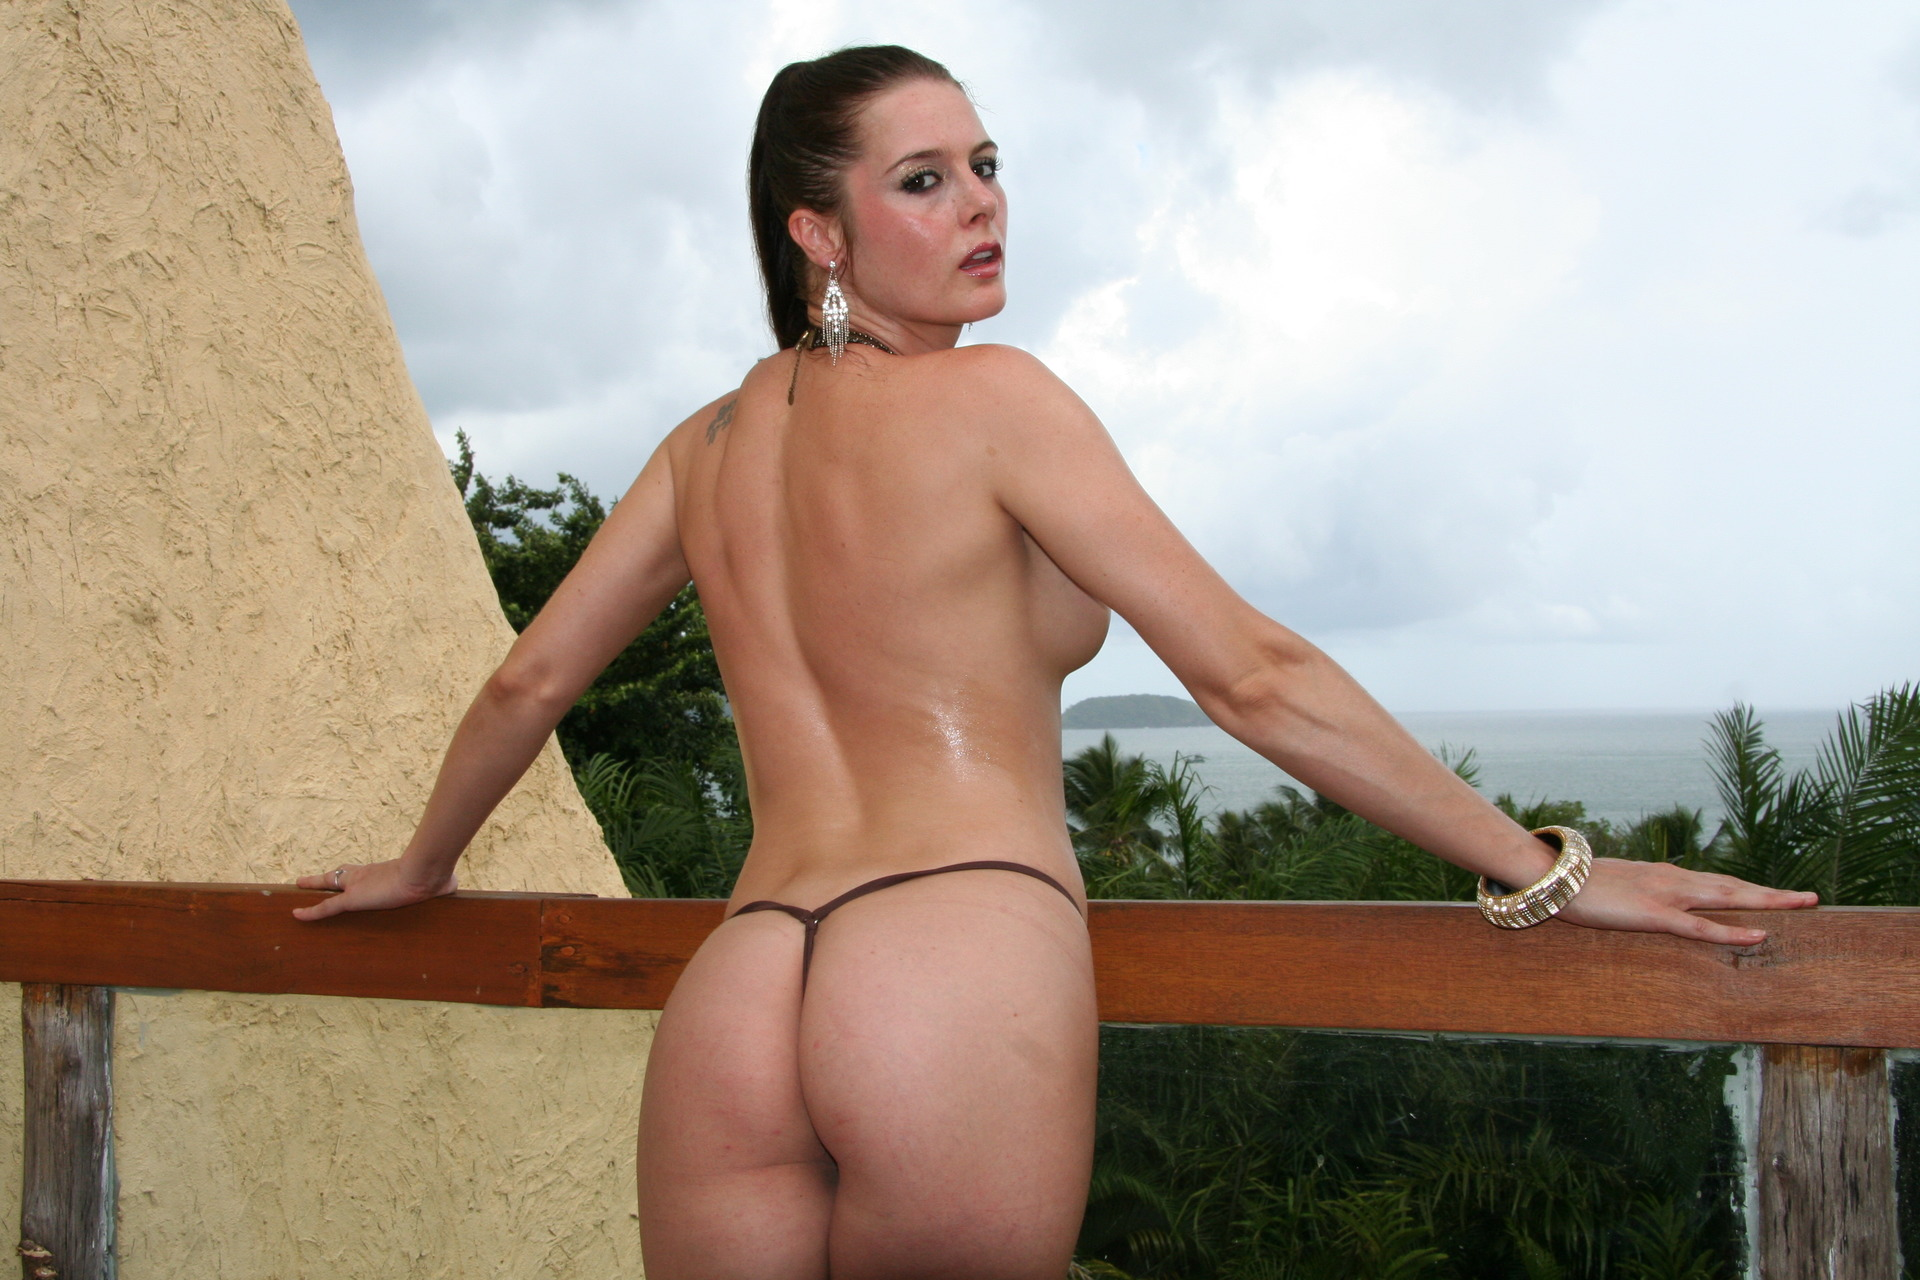 karina currie topless turning away from the camera in a black thong on a balcony showing her arse